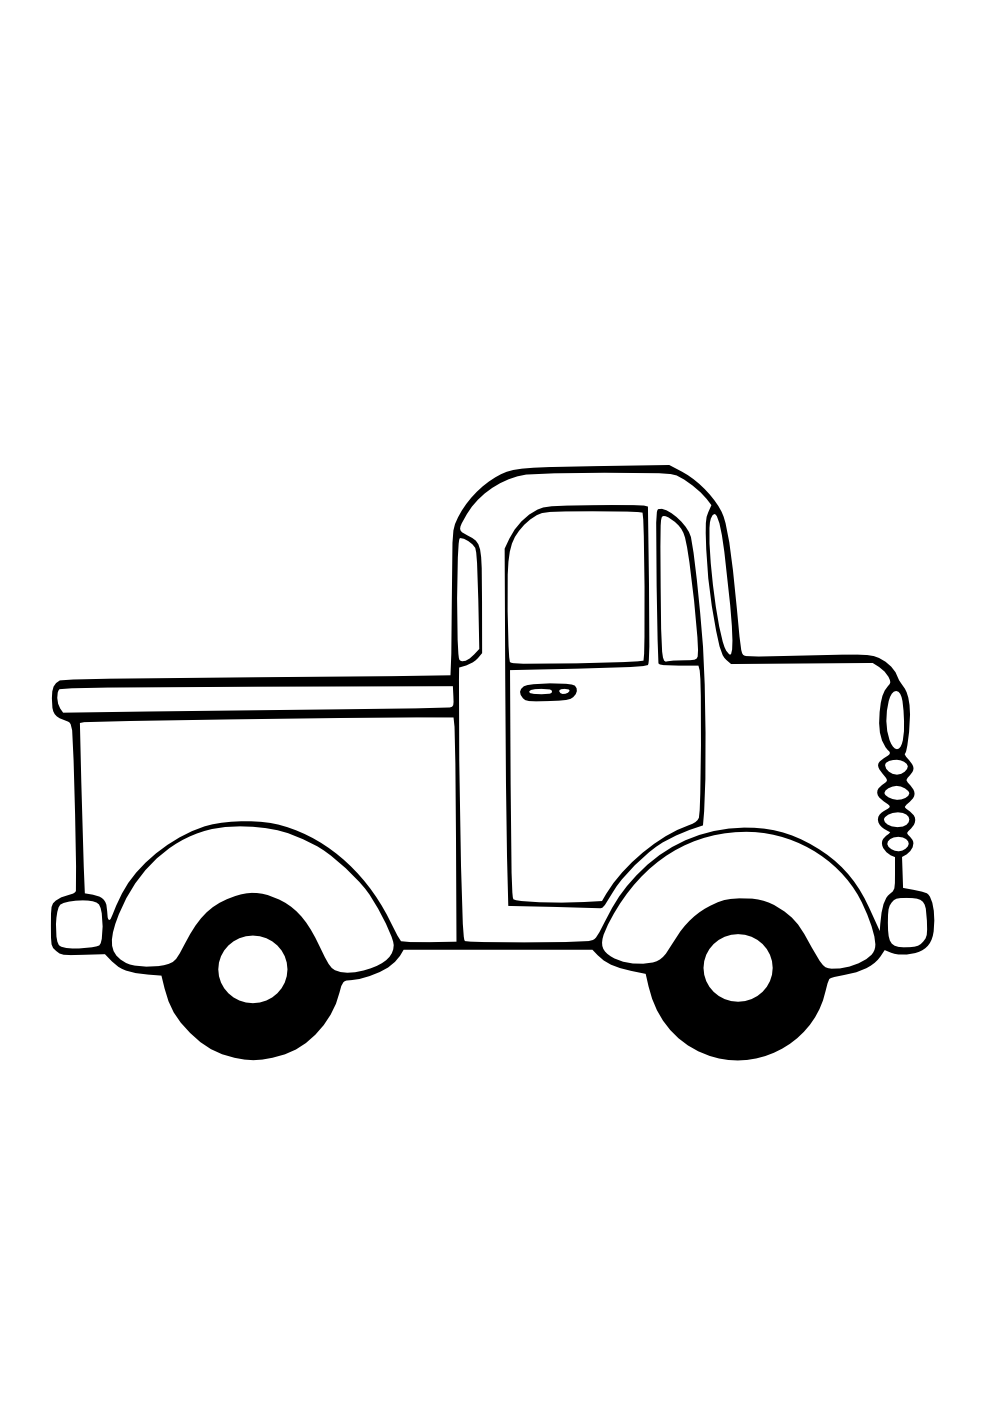 Delivery car clipart clip art black and white Truck Clip Art - Cliparts.co clip art black and white